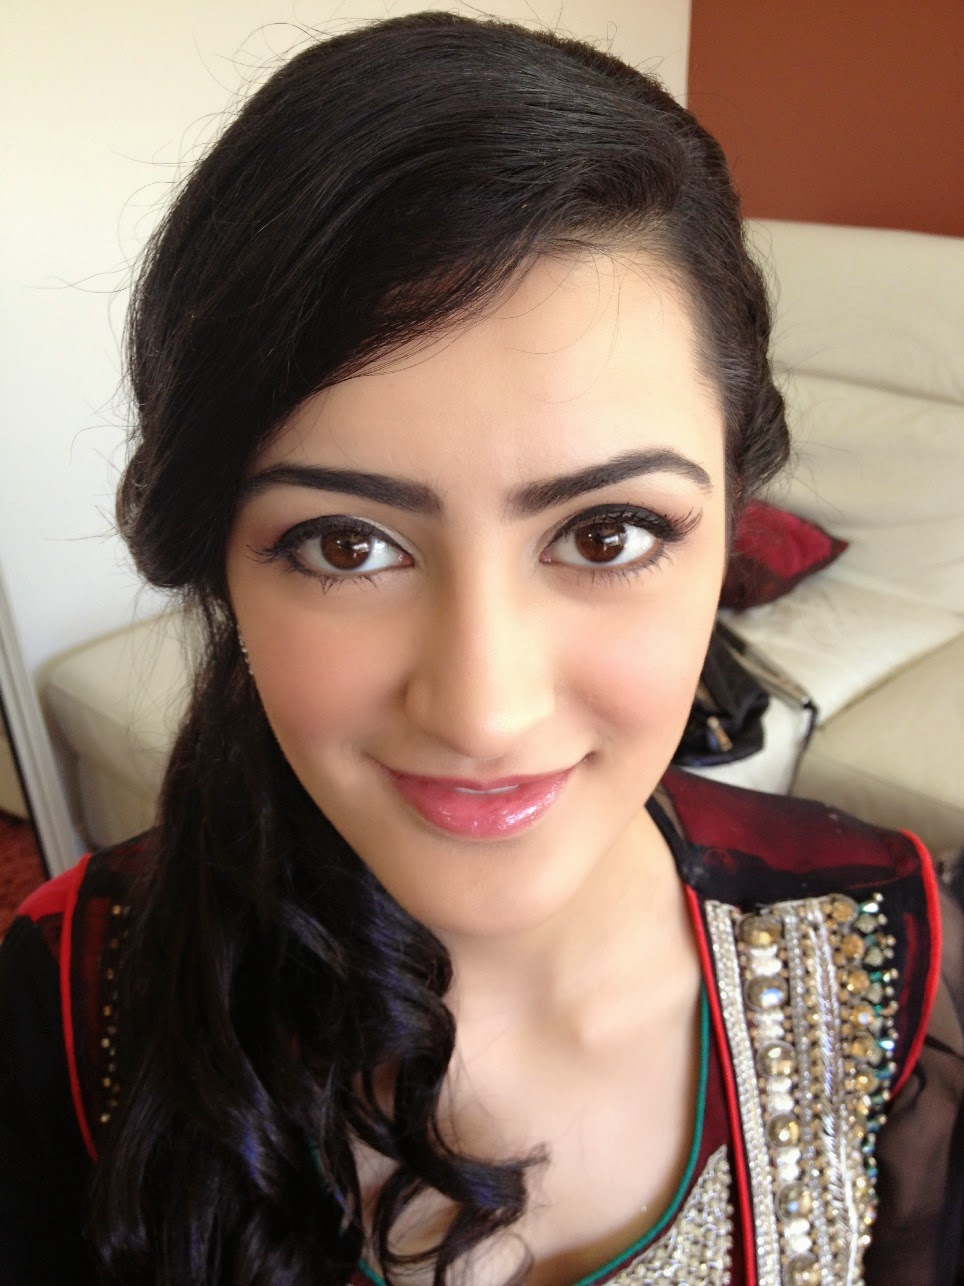 how to look middle eastern with makeup